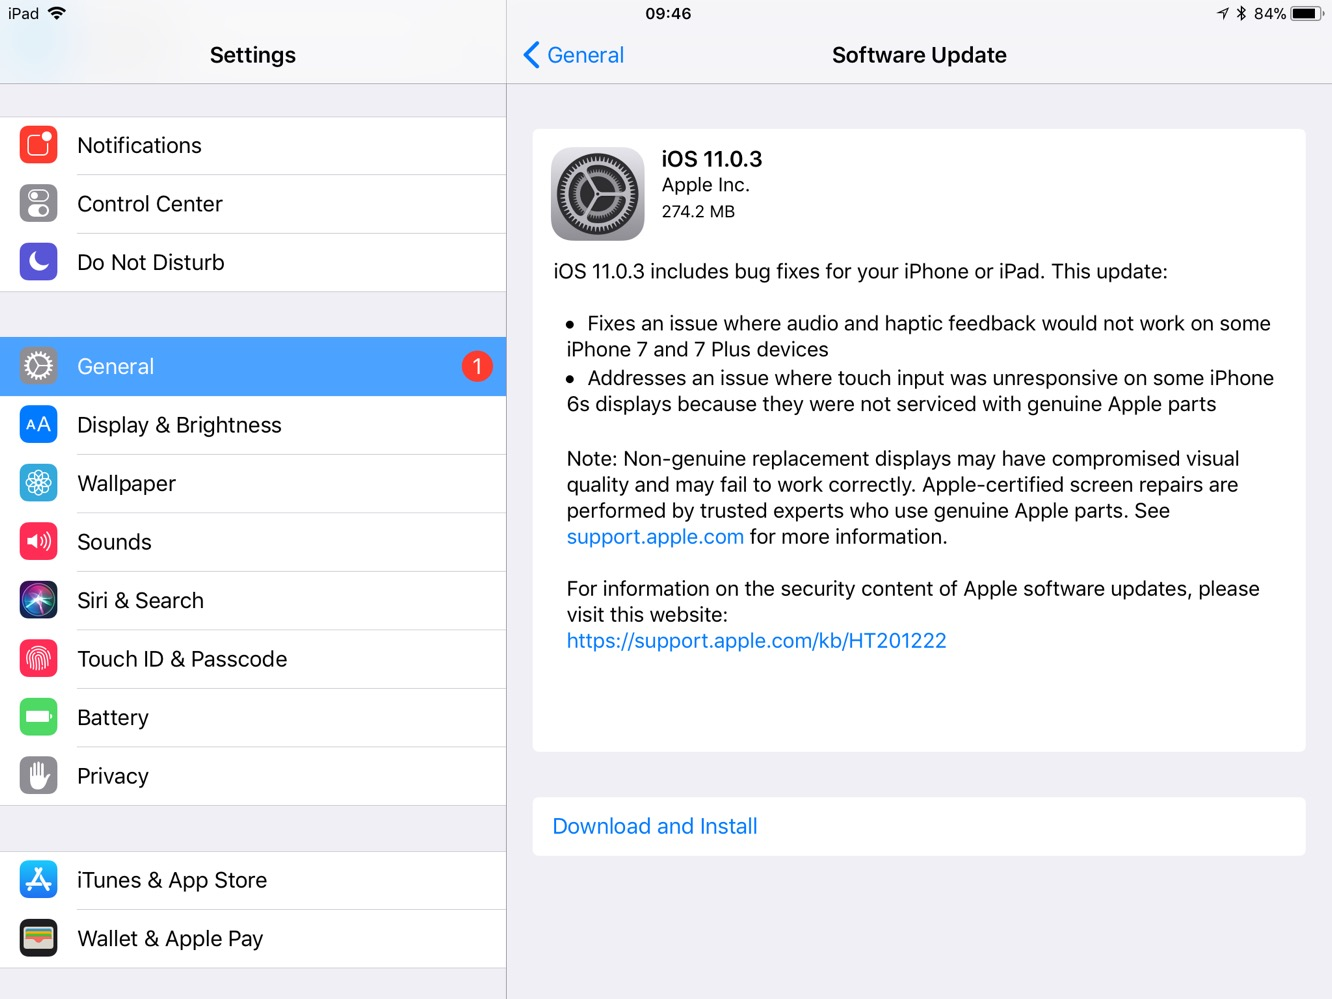 News: Apple releases iOS 11.0.3 with a warning about 'non-genuine replacement displays'